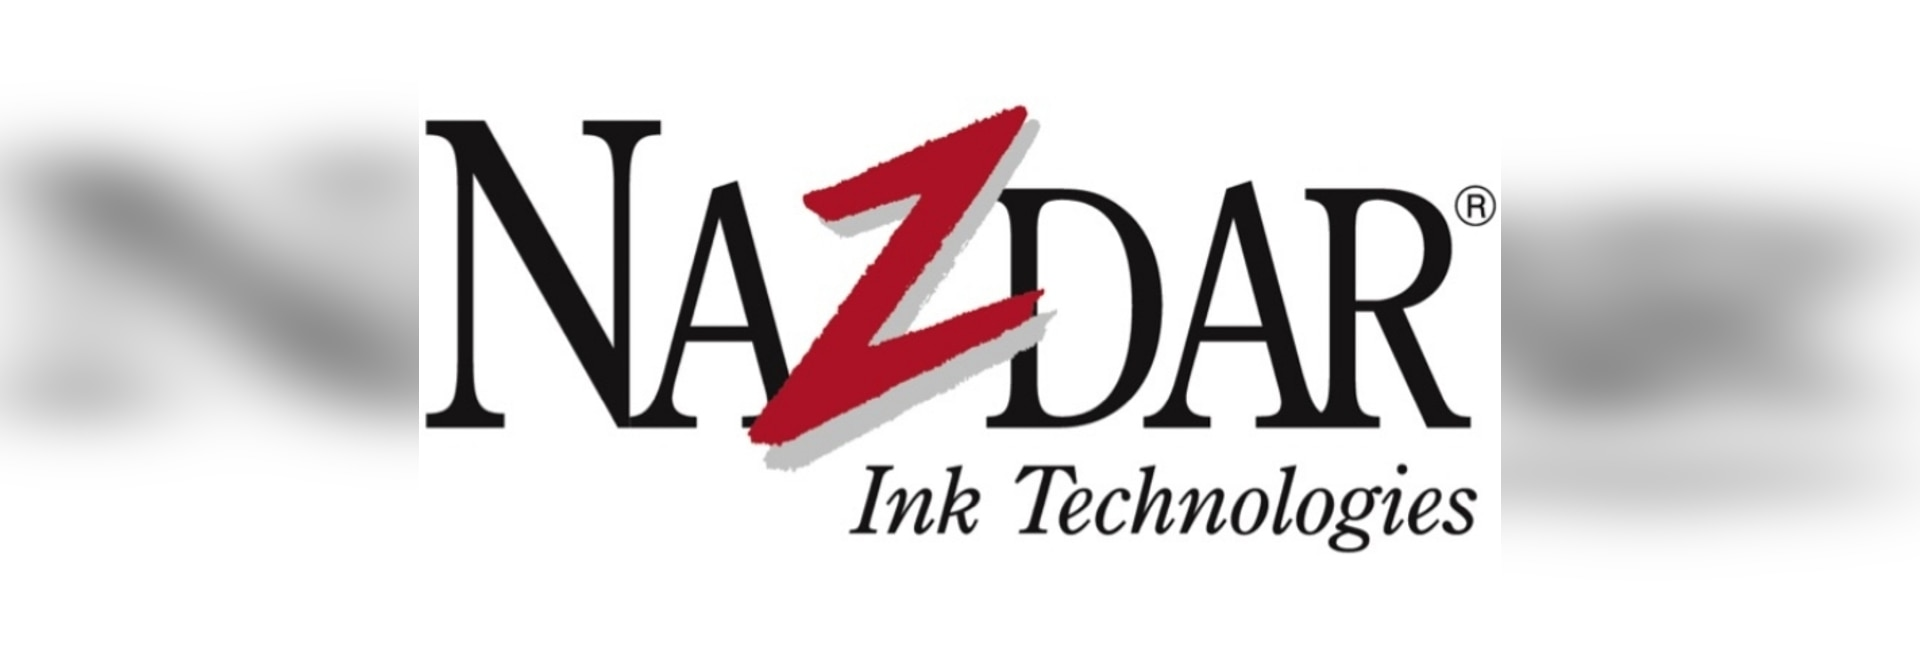 Nazdar Ink Technologies to Showcase Ink Innovations su SourceOne Stand al 2020 ISA